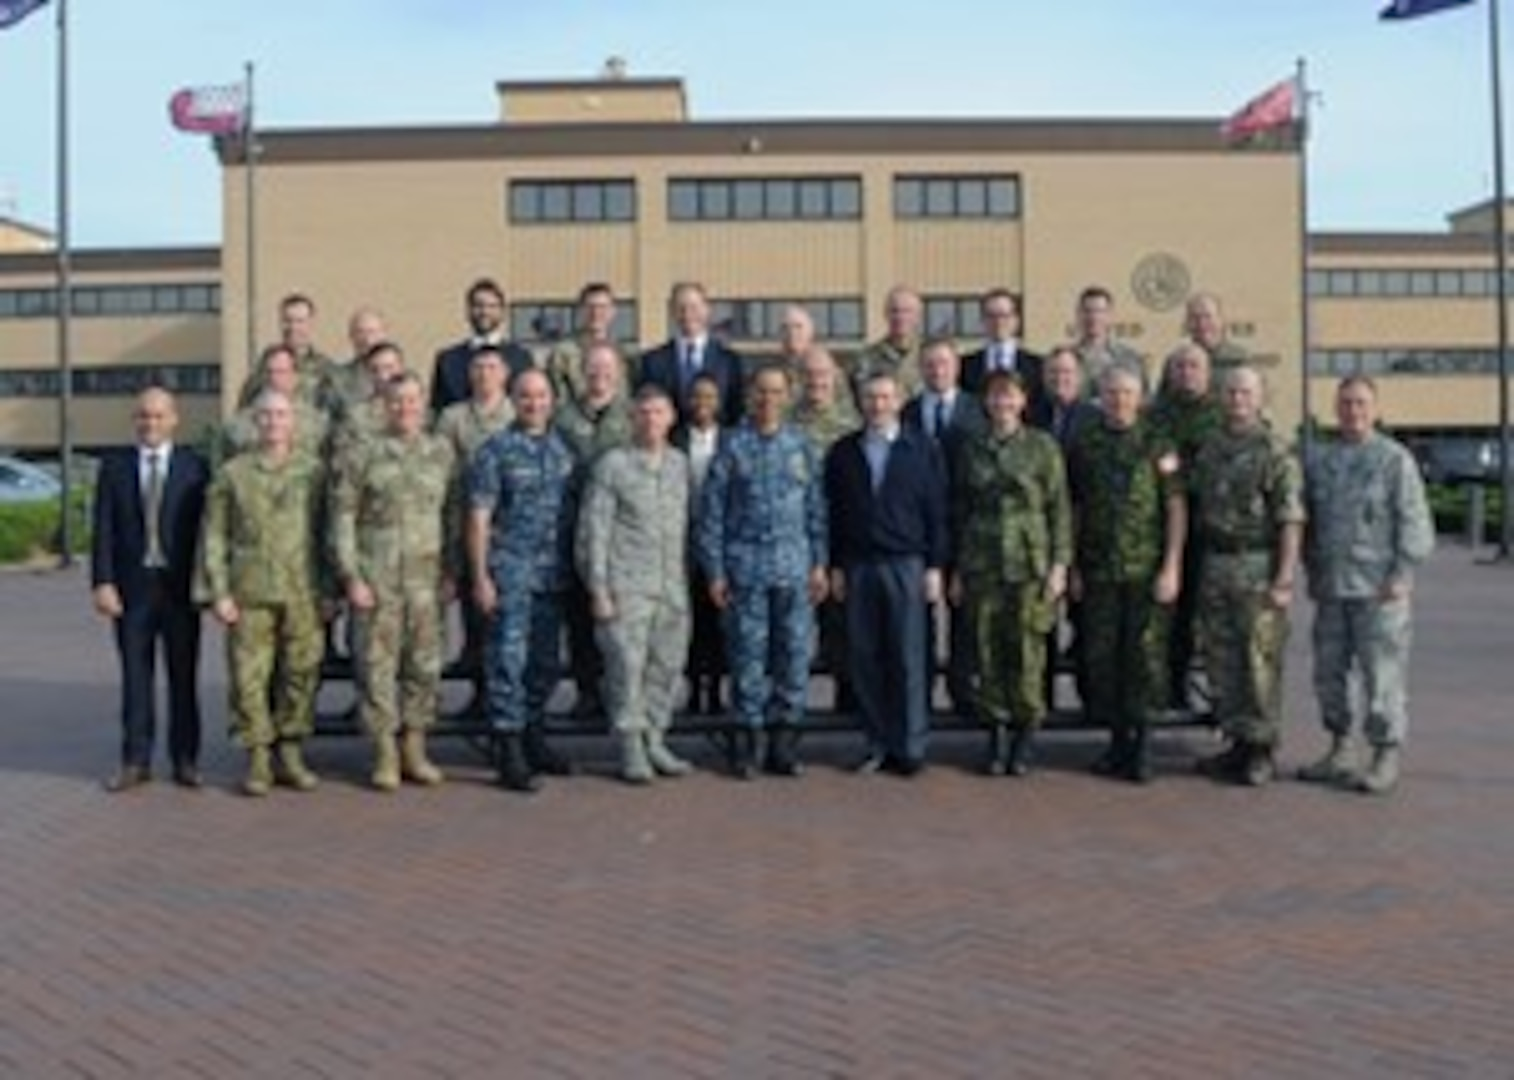 Adm. Cecil D. Haney (front row, center), U.S. Strategic Command (USSTRATCOM) commander; Vice Adm. Charles A. Richard (front row, fourth from left), USSTRATCOM deputy commander; and other senior command leaders host representatives from the U.K. and Canada for exercise Global Thunder 17 at Offutt Air Force Base, Neb., Oct 28, 2016. More than 20 representatives from the U.K. and Canada traveled to the command's headquarters for the exercise and discussions on continuing collaboration in exercise and real-world operations. The U.K. team was led by Operations Director for the U.K. Ministry of Defence Air Vice Marshal Edward Stringer (front row, fifth from right); and the Canadian team was led by Canadian Armed Forces Director General for Cyberspace Brig. Gen. Frances Allen (front row, fourth from right). Hosting these international participants supports USSTRATCOM's priority to build, support and sustain partnerships with allies to confront challenges with agility and innovation. (USSTRATCOM photo by Steve Cunningham)